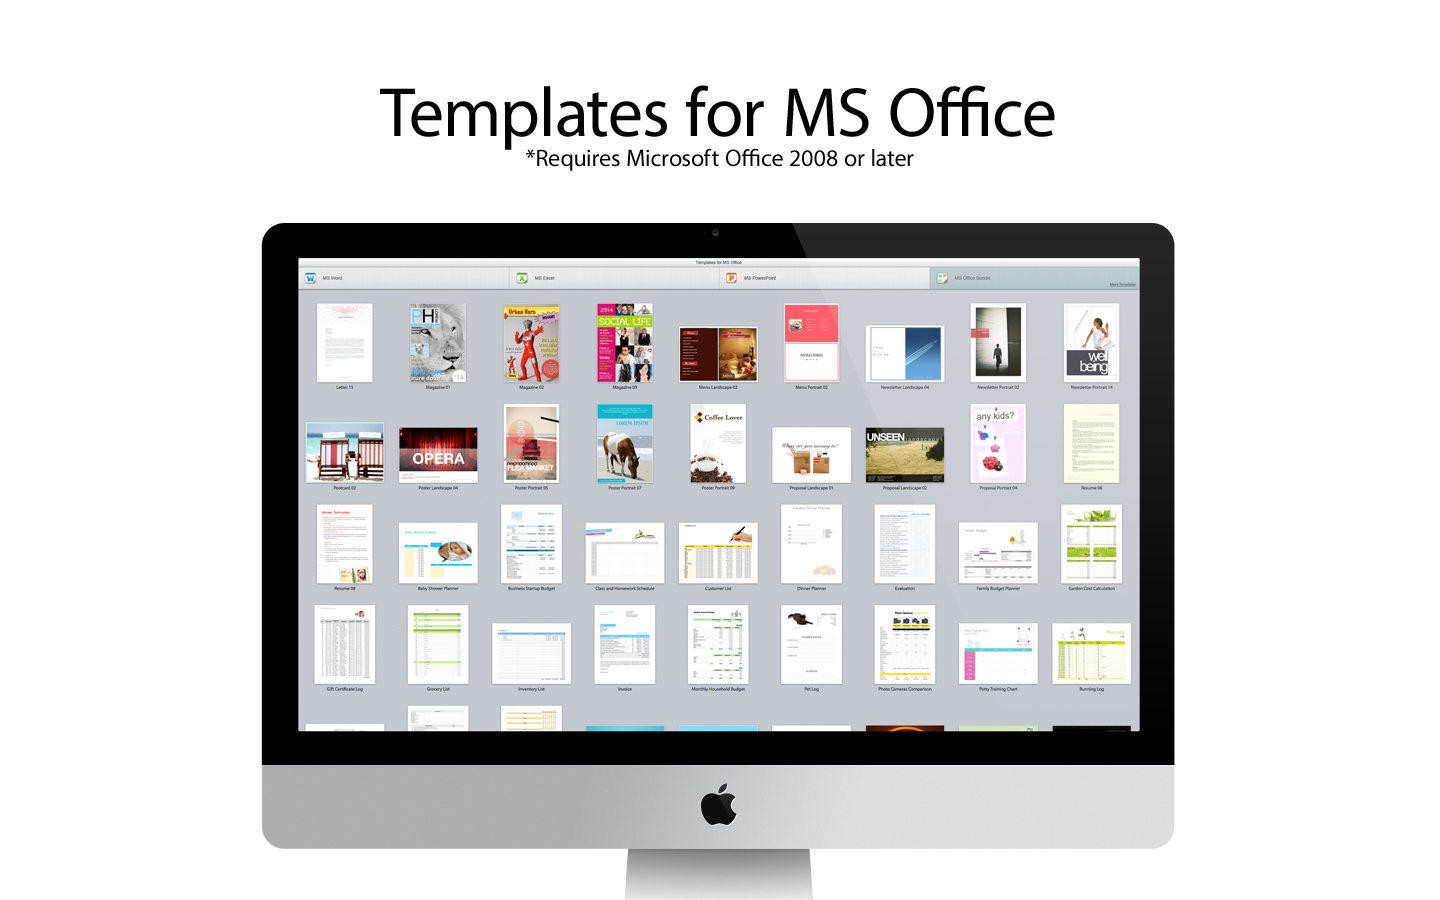 amazon com templates for ms office software